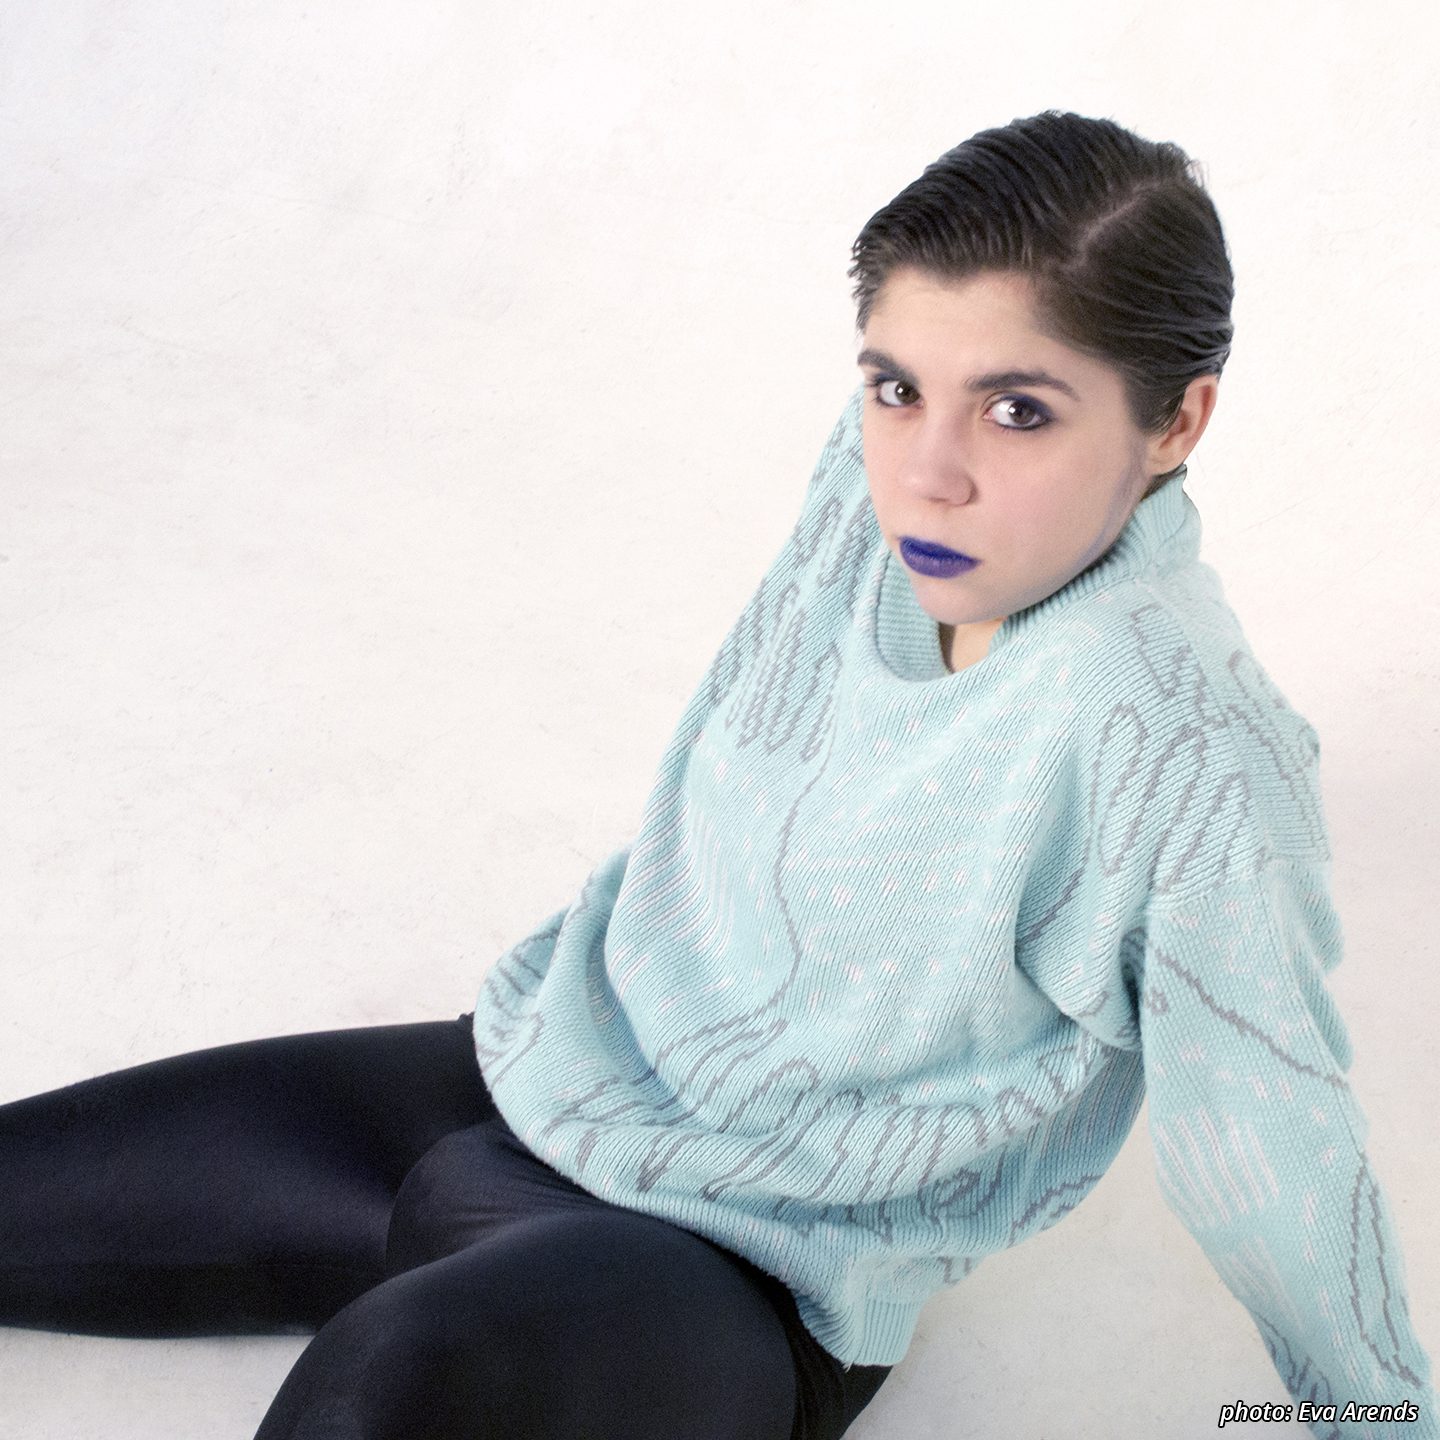 Picture of a character (Horseboy) photographed in profile, turning his head to look stright at the camera. The character has gelled hair that's combed back, blue lipstick, black and blue eyeliner and is wearing black leggings and a light blue jumper with abstract grey pront and white dots.